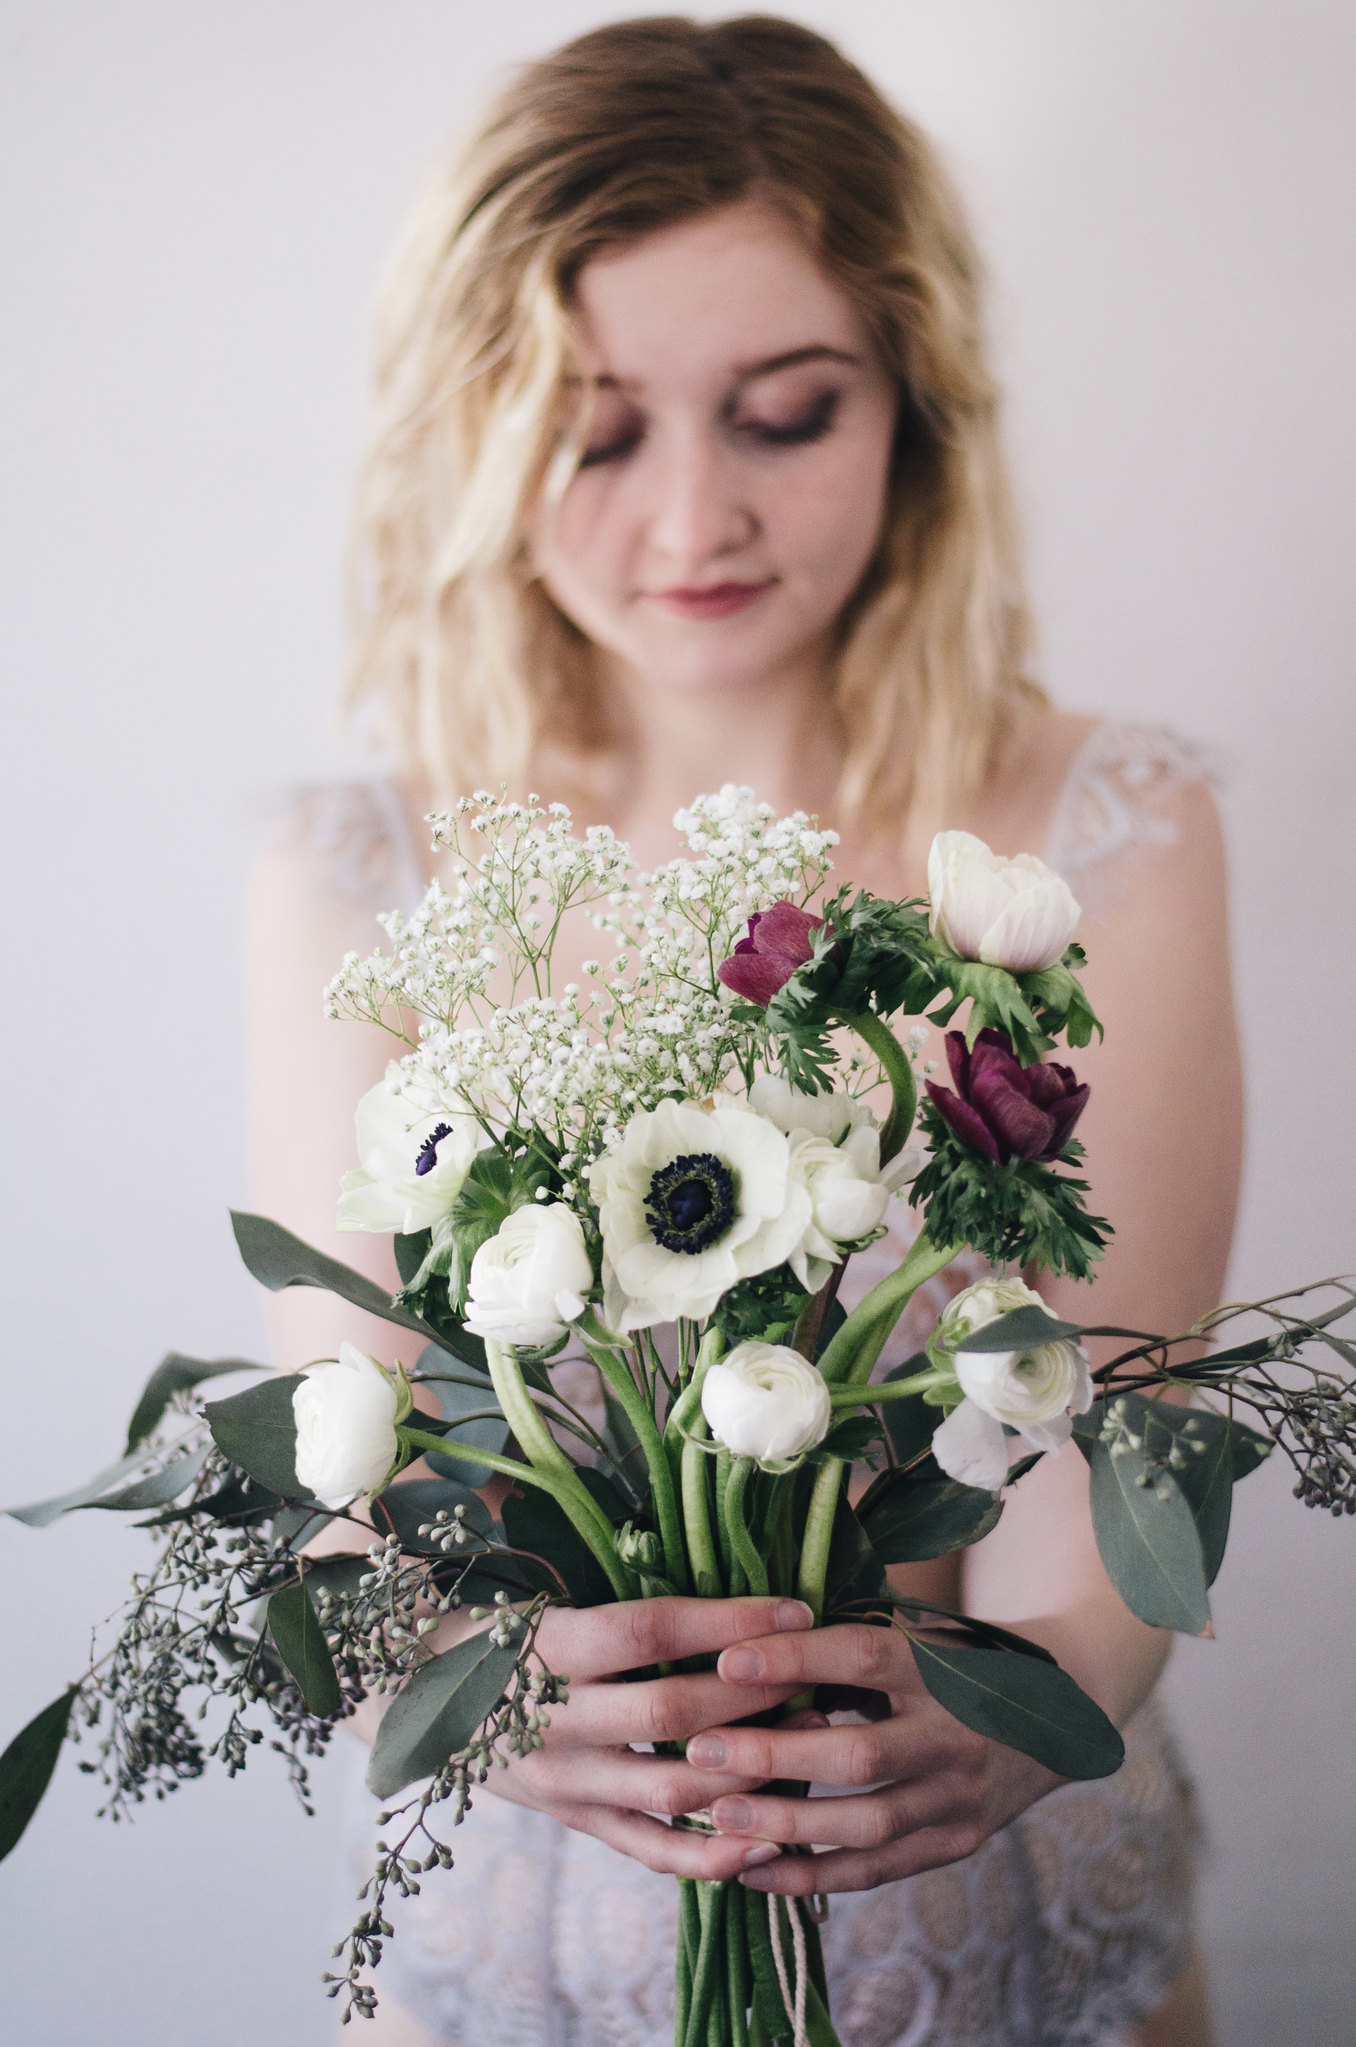 Ranunculus, Anemones, Babies Breath, and Seeded Eucalyptus on juliettelaura.blogspot.com